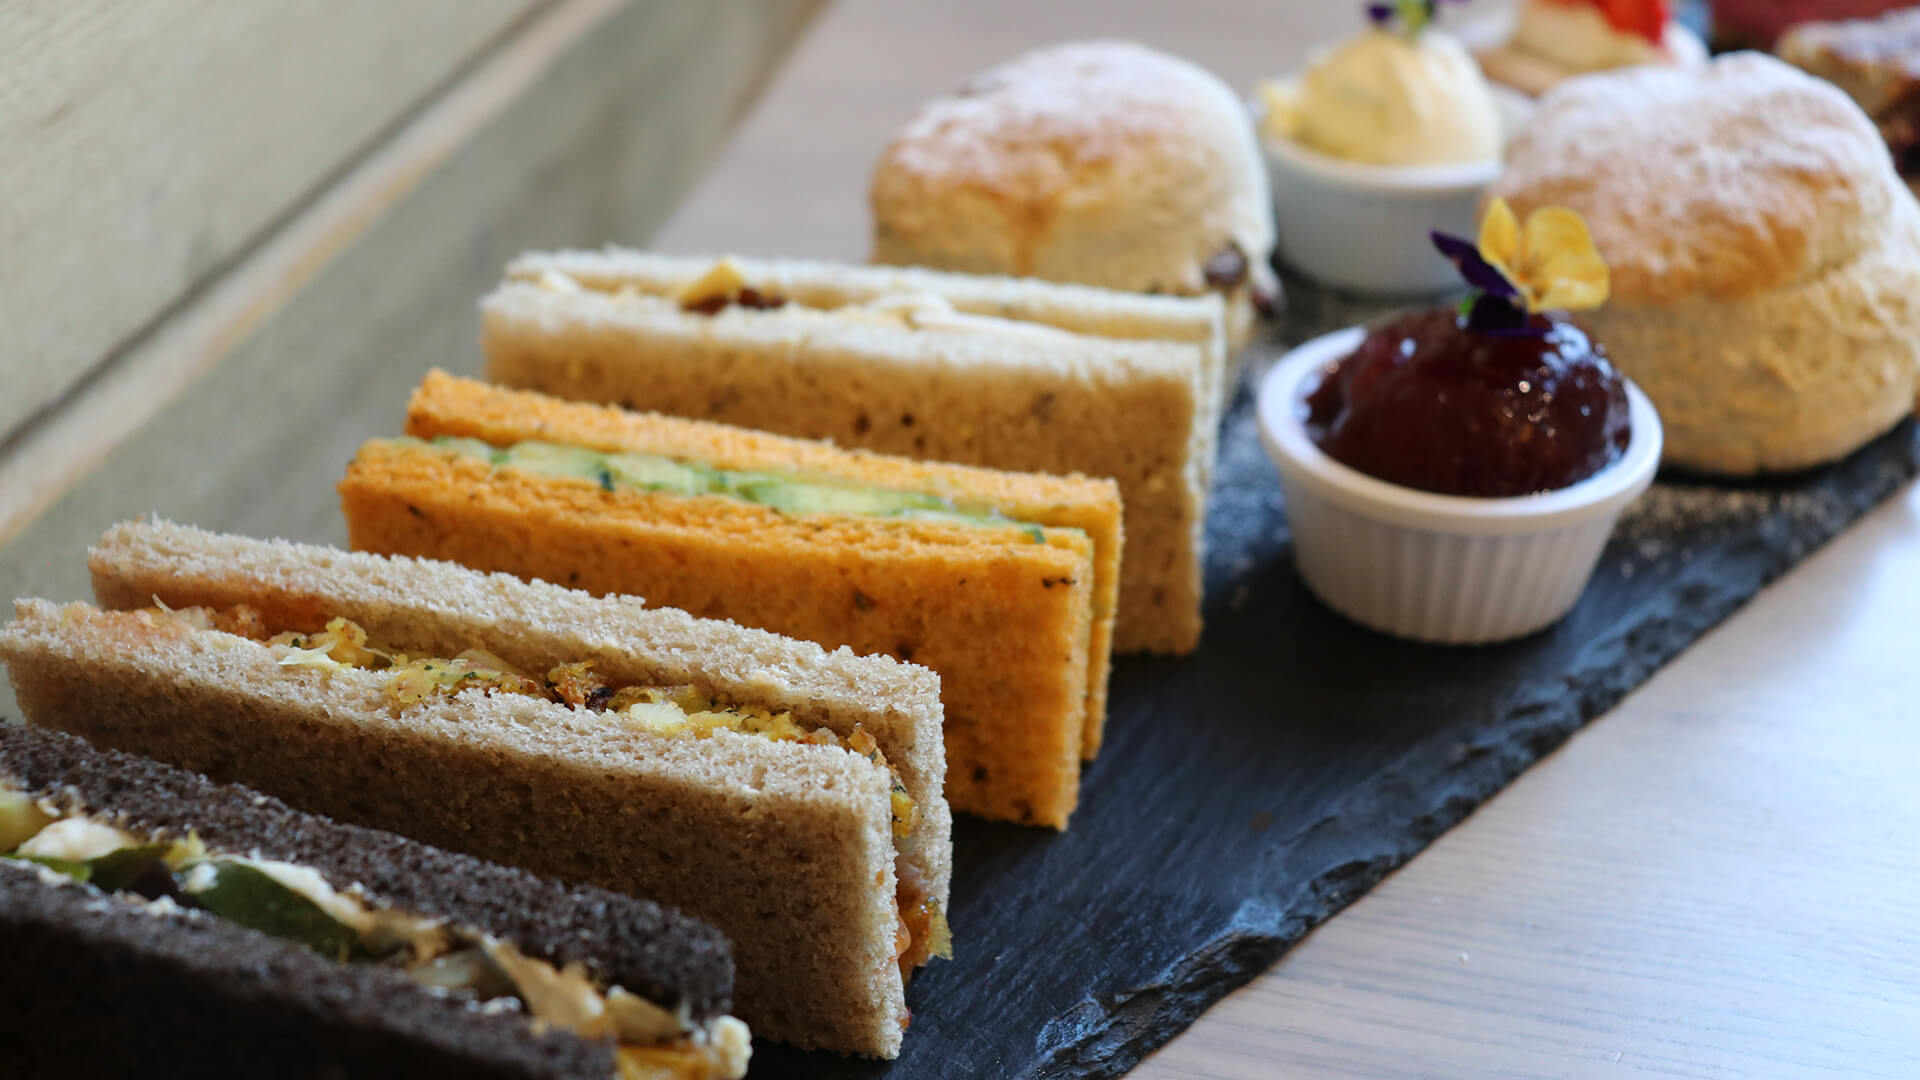 Sandwiches and Scones at The Mulberry Tree